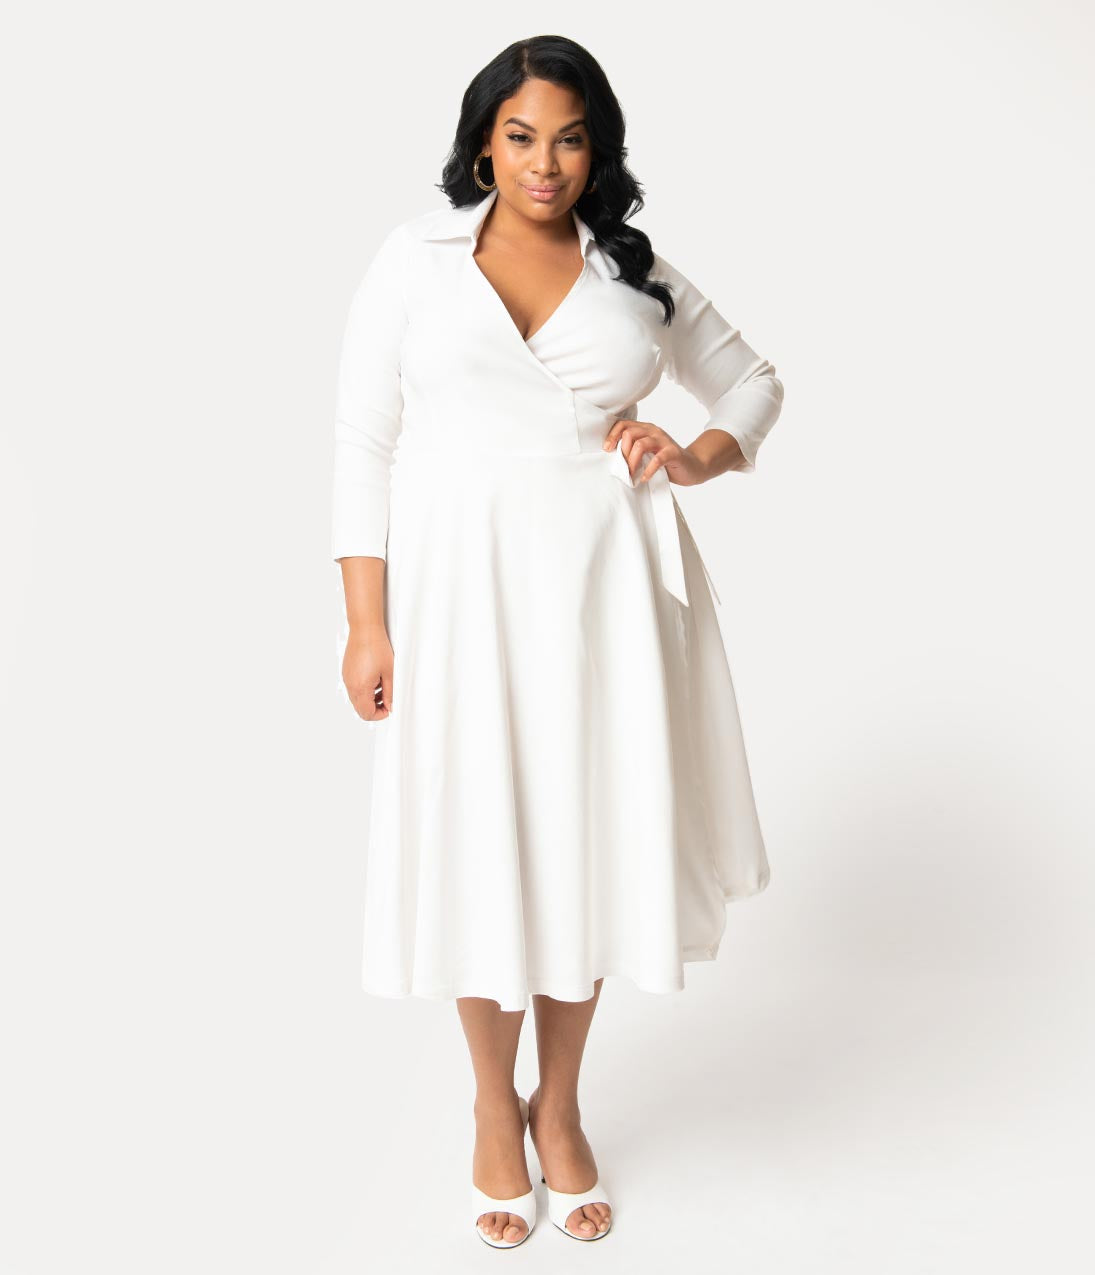 1950s Fashion History: Women's Clothing Unique Vintage Plus Size 1950S Style White Stretch Sleeved Anna Wrap Dress $74.00 AT vintagedancer.com